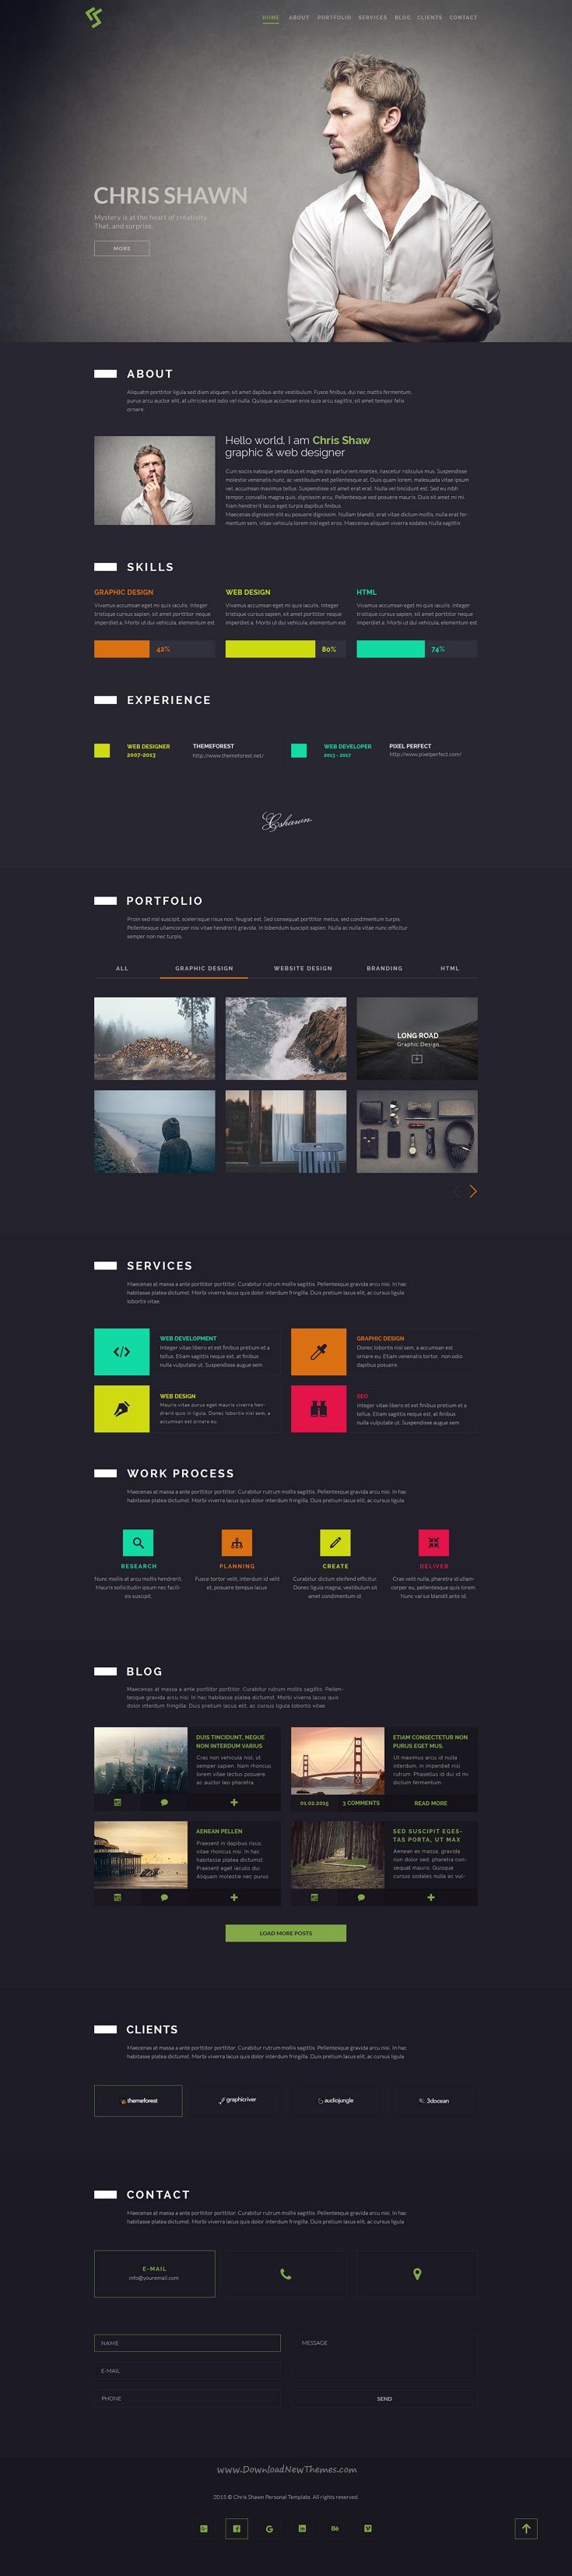 Chris Shawn is a clean and modern design #psd #template for #webdev personal one page website with unique colors download now➩  https://themeforest.net/item/chris-shawn-one-page-psd-template/18774941?ref=Datasata